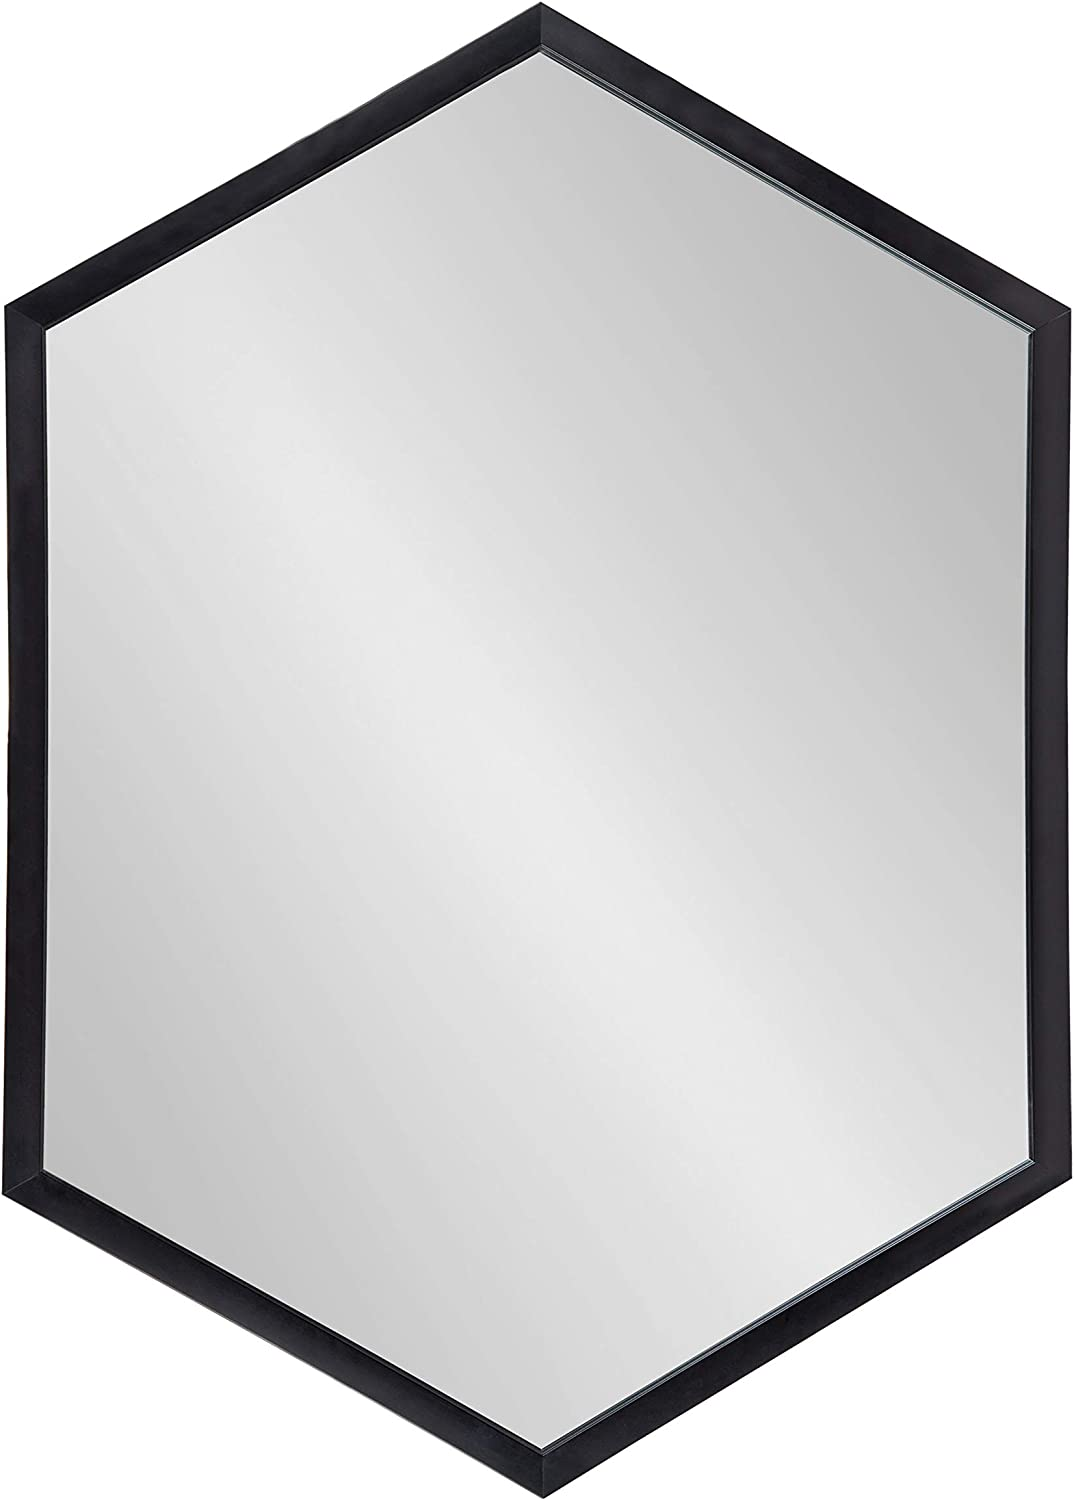 Amazon Com Kate And Laurel Laverty Modern Framed Hexagon Mirror 22 X 31 Black Contemporary Geometric Wall Decor Furniture Decor